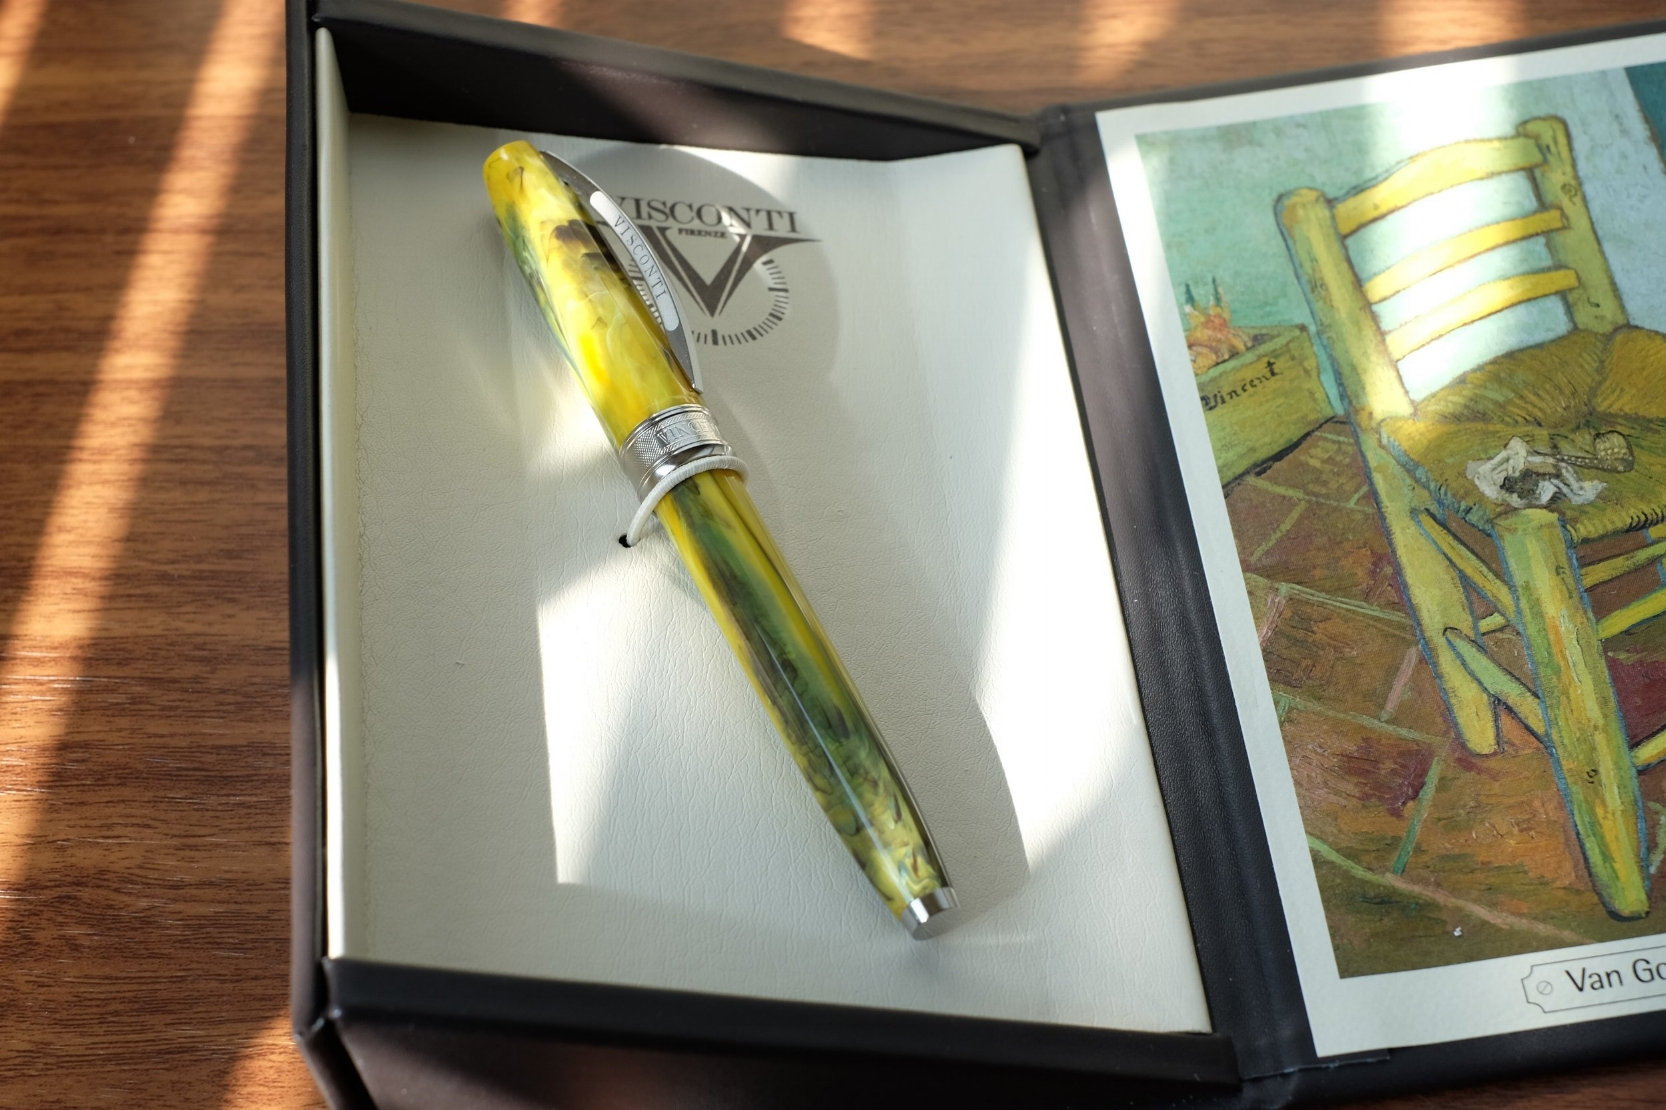 The Van Gogh pens feature the patented Visconti clip, and have the name of the painting that inspired the pen engraved around the cap band.